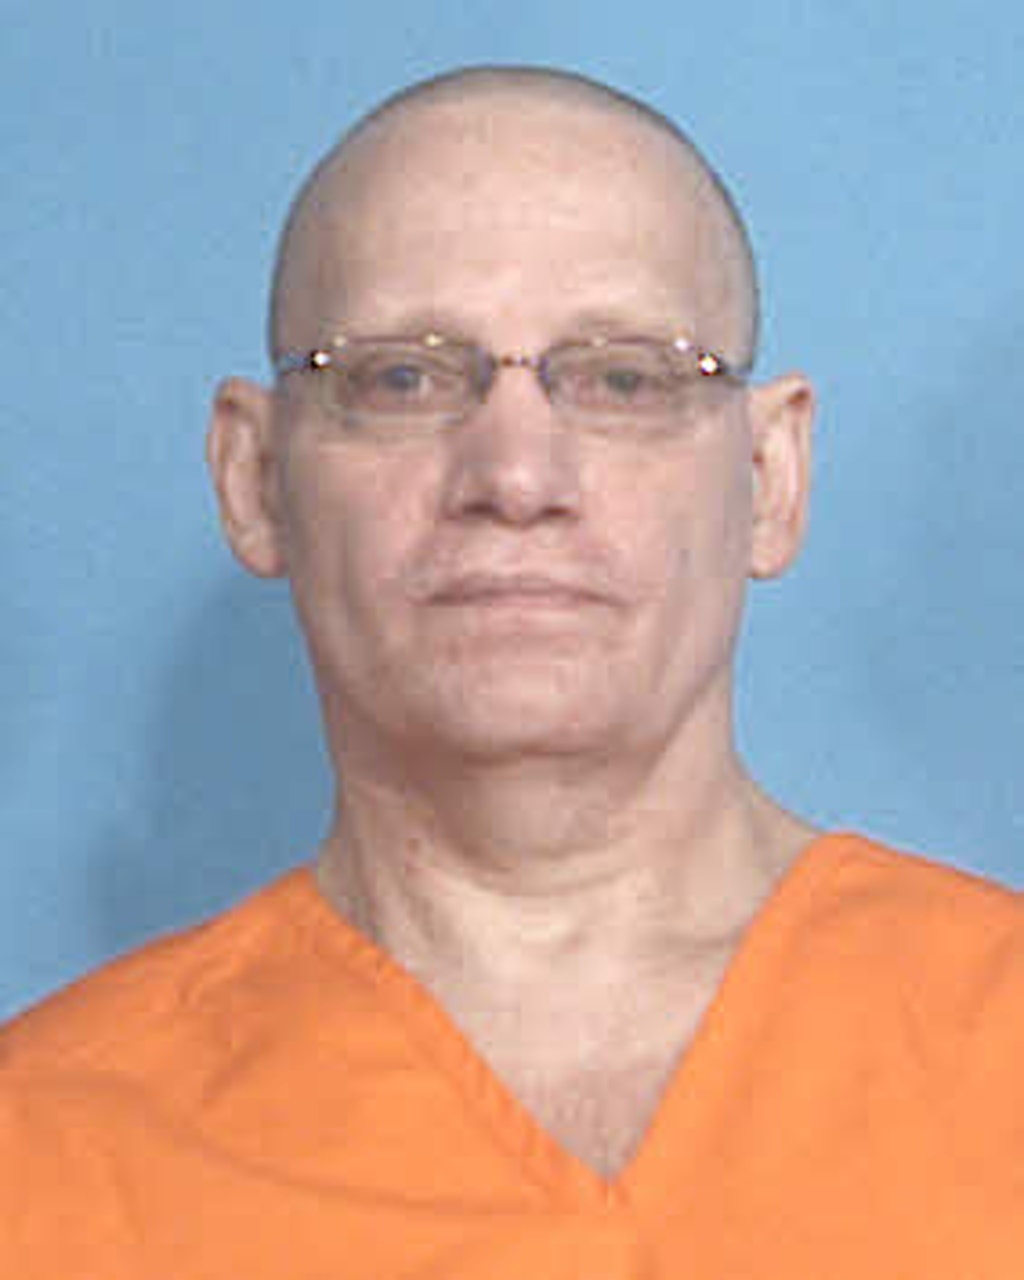 Florida Supreme Court Directs Acquittal of Death Row Inmate